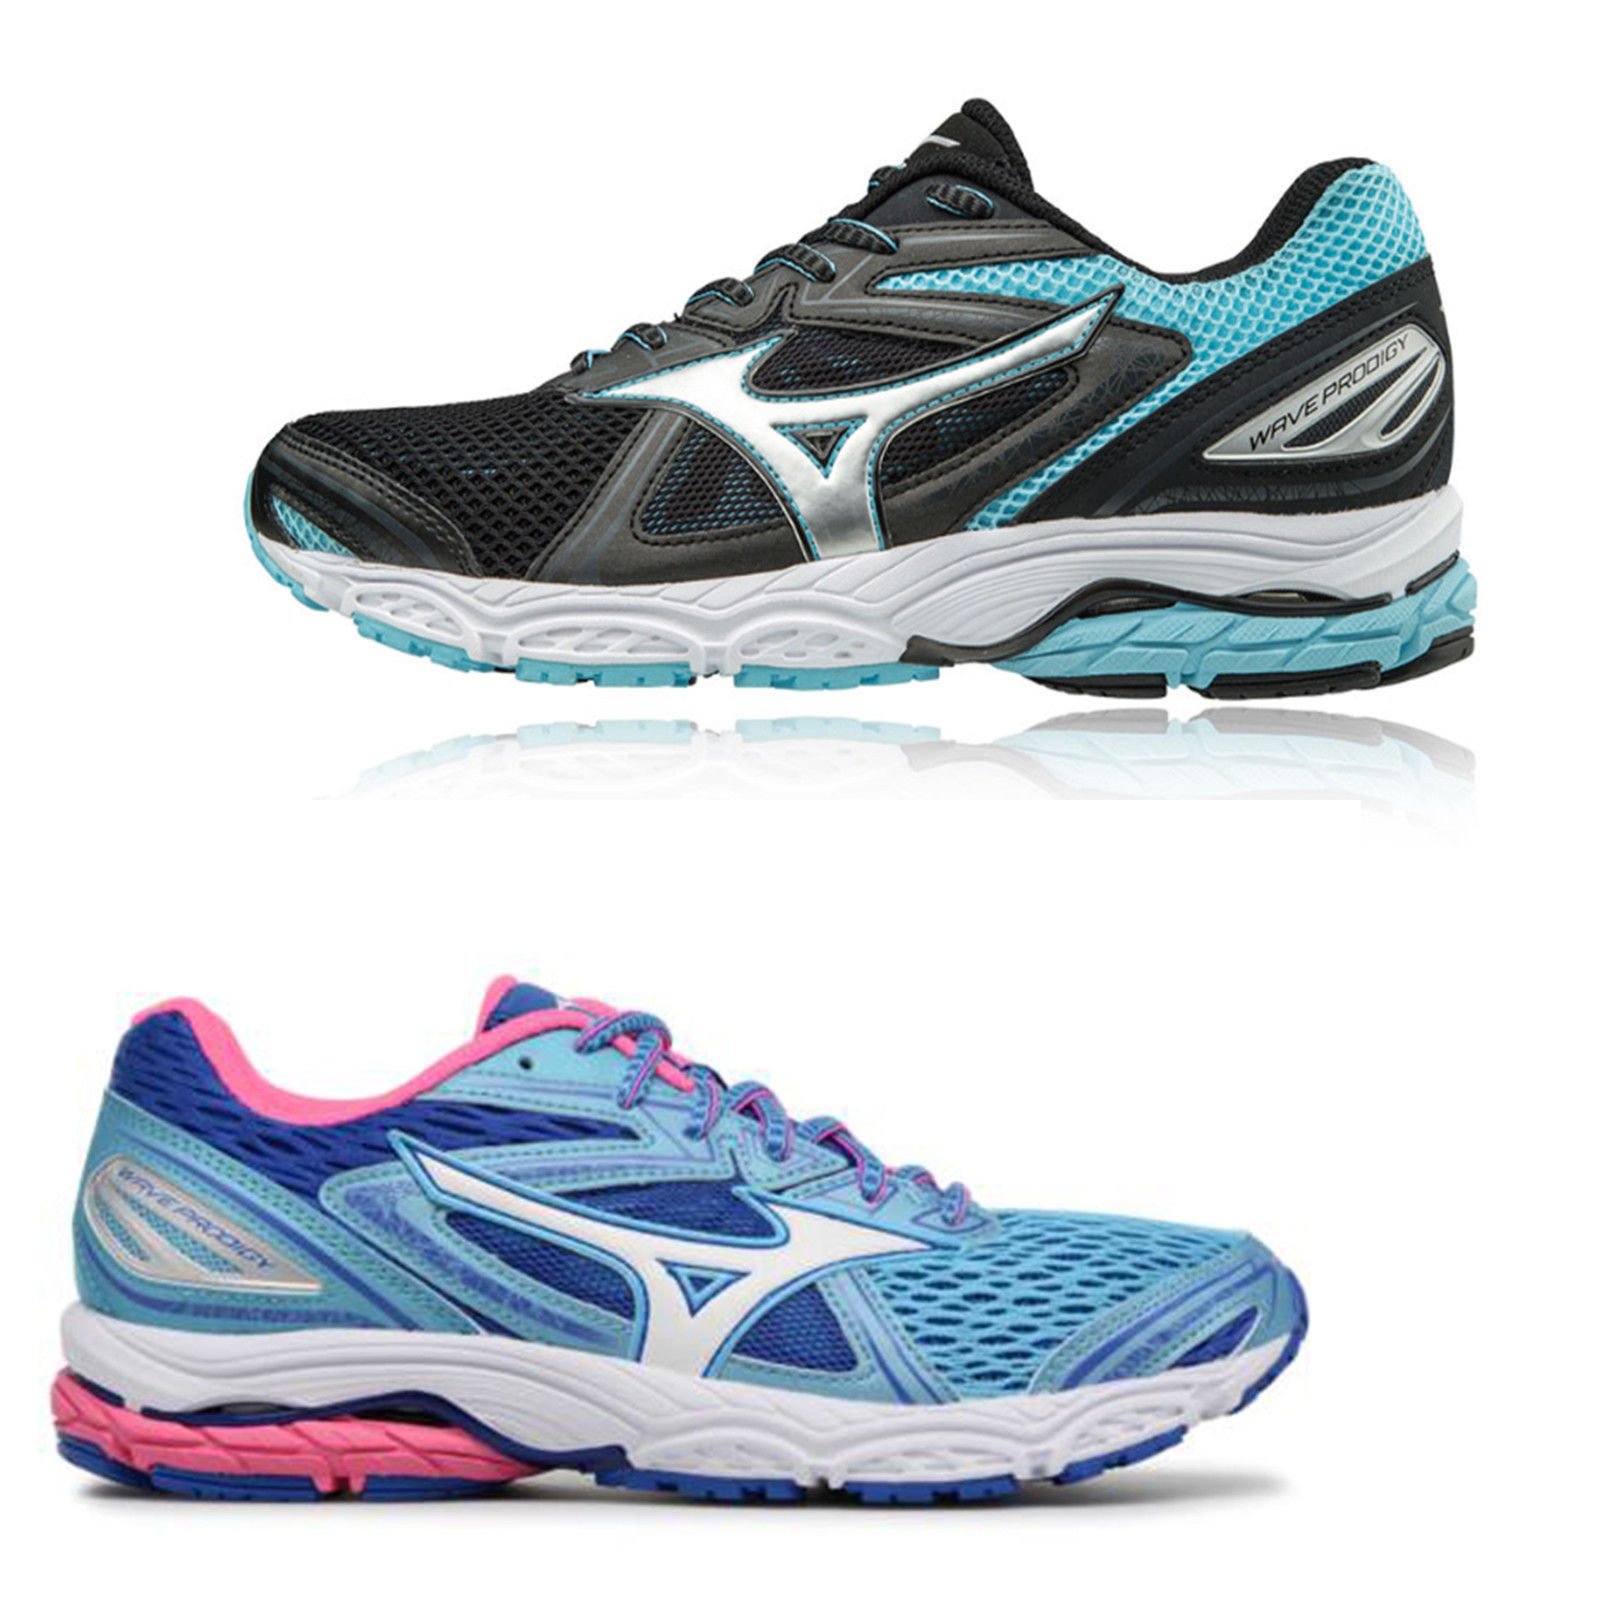 880e57e30cff Details about Womens Mizuno Wave Prodigy Runnig Shoes Trainers Sizes 4 to  7.5 - Medium